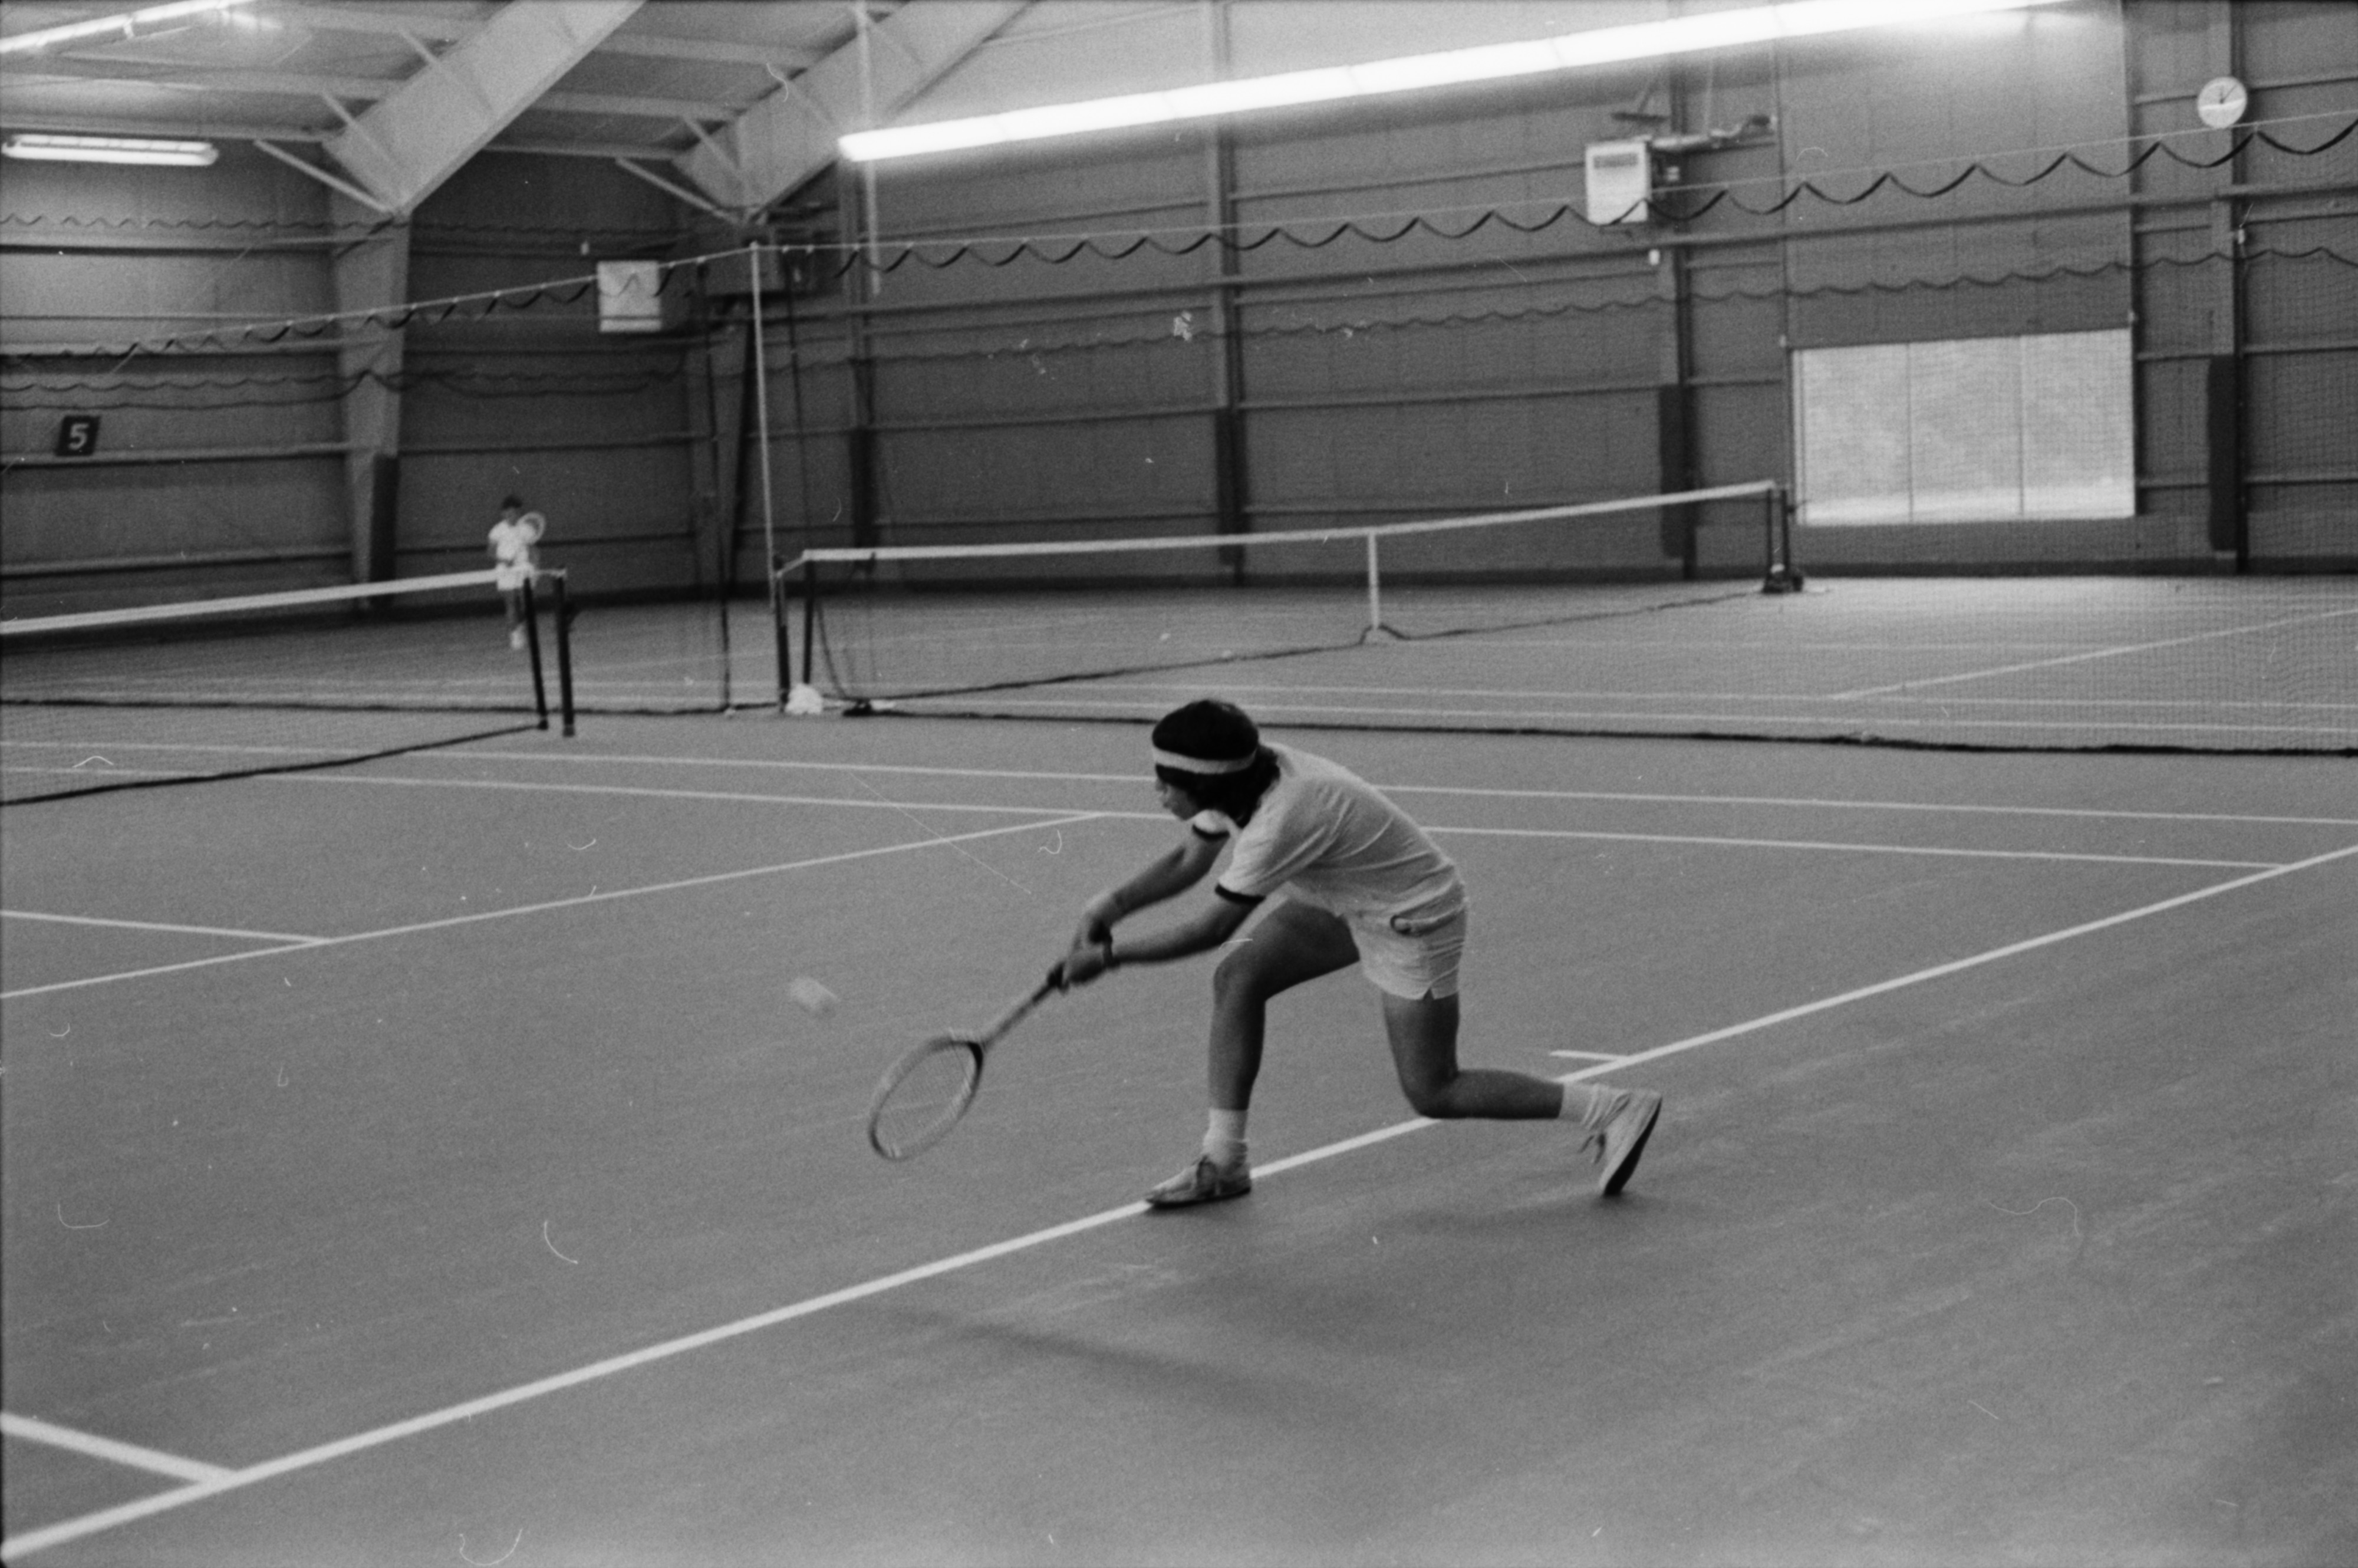 Gene Sperling, Ann Arbor Junior Open, August 1972 image